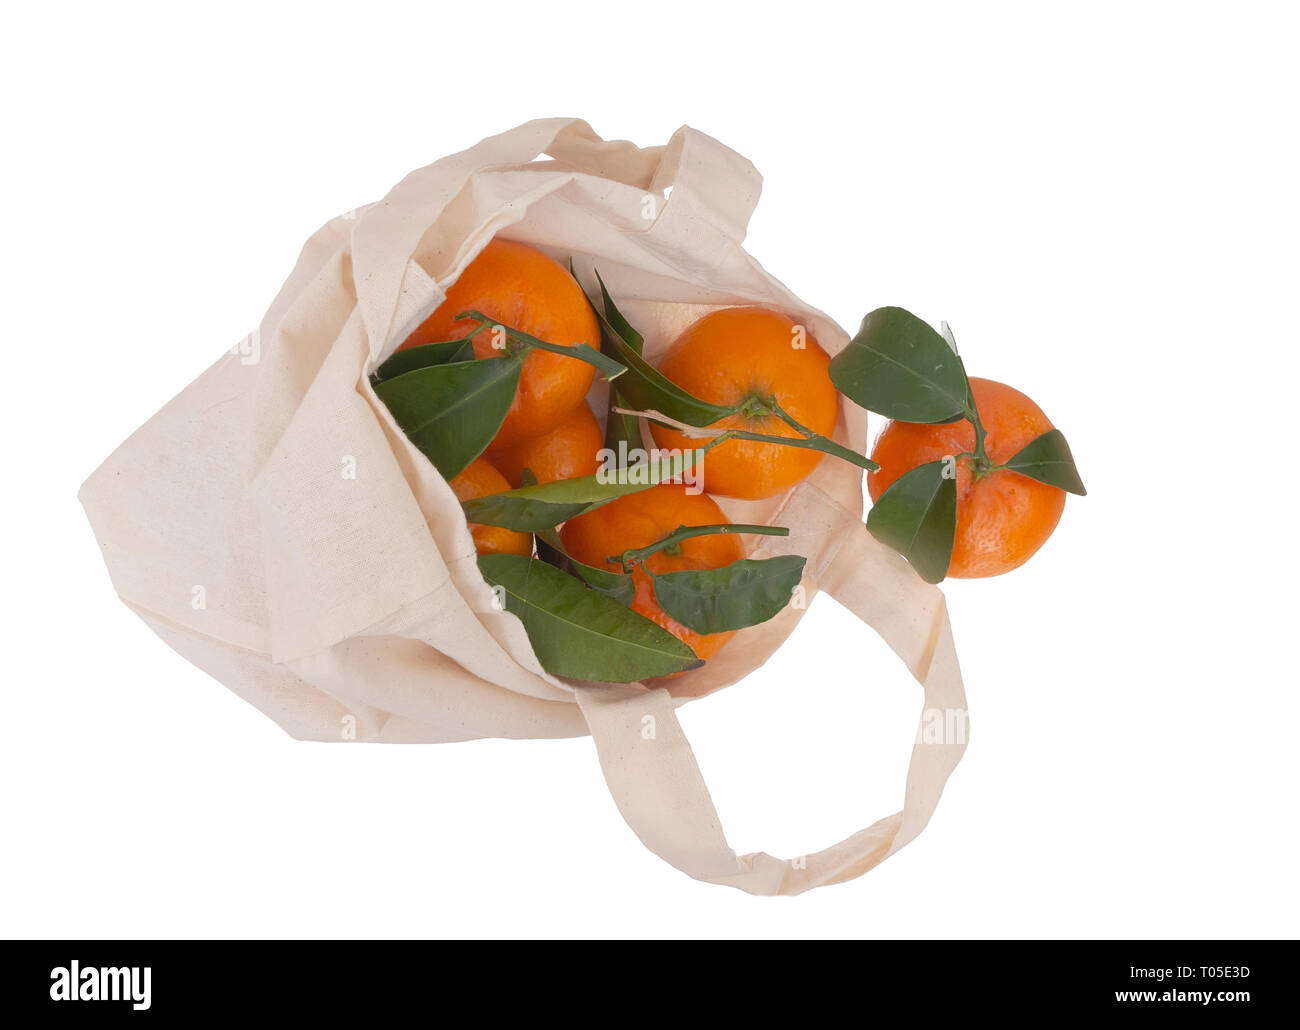 Fresh picked oranges in reusable, recyclable fabric shopping tote bag, isolated on white. For environmentally friendly, green consumers. - Stock Image